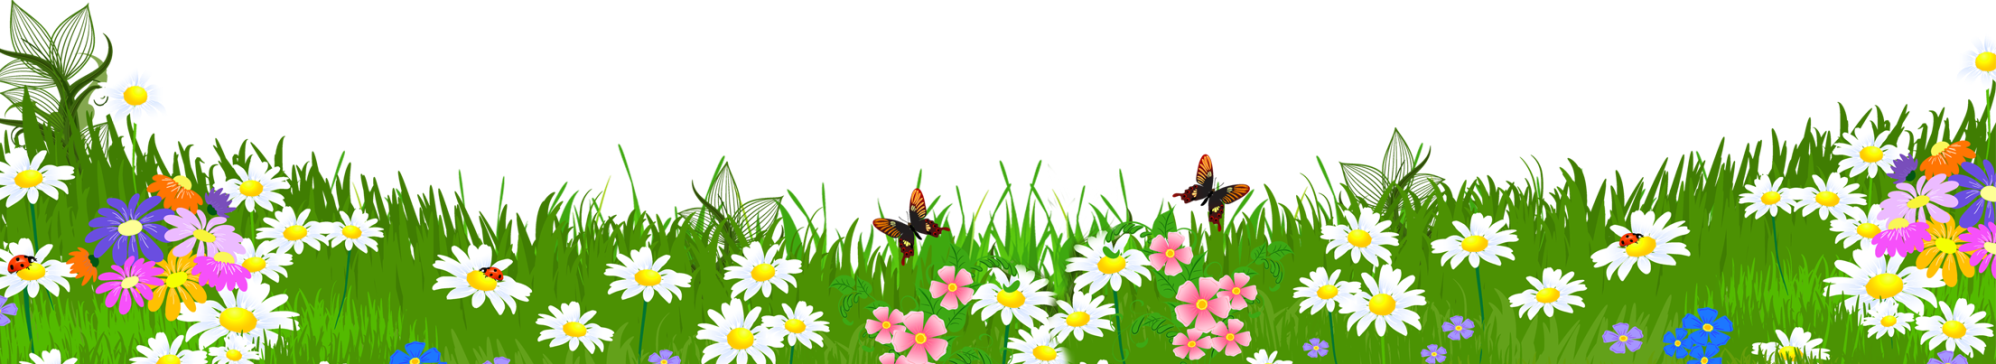 hight resolution of daisy clipart landscape grass ground with flowers